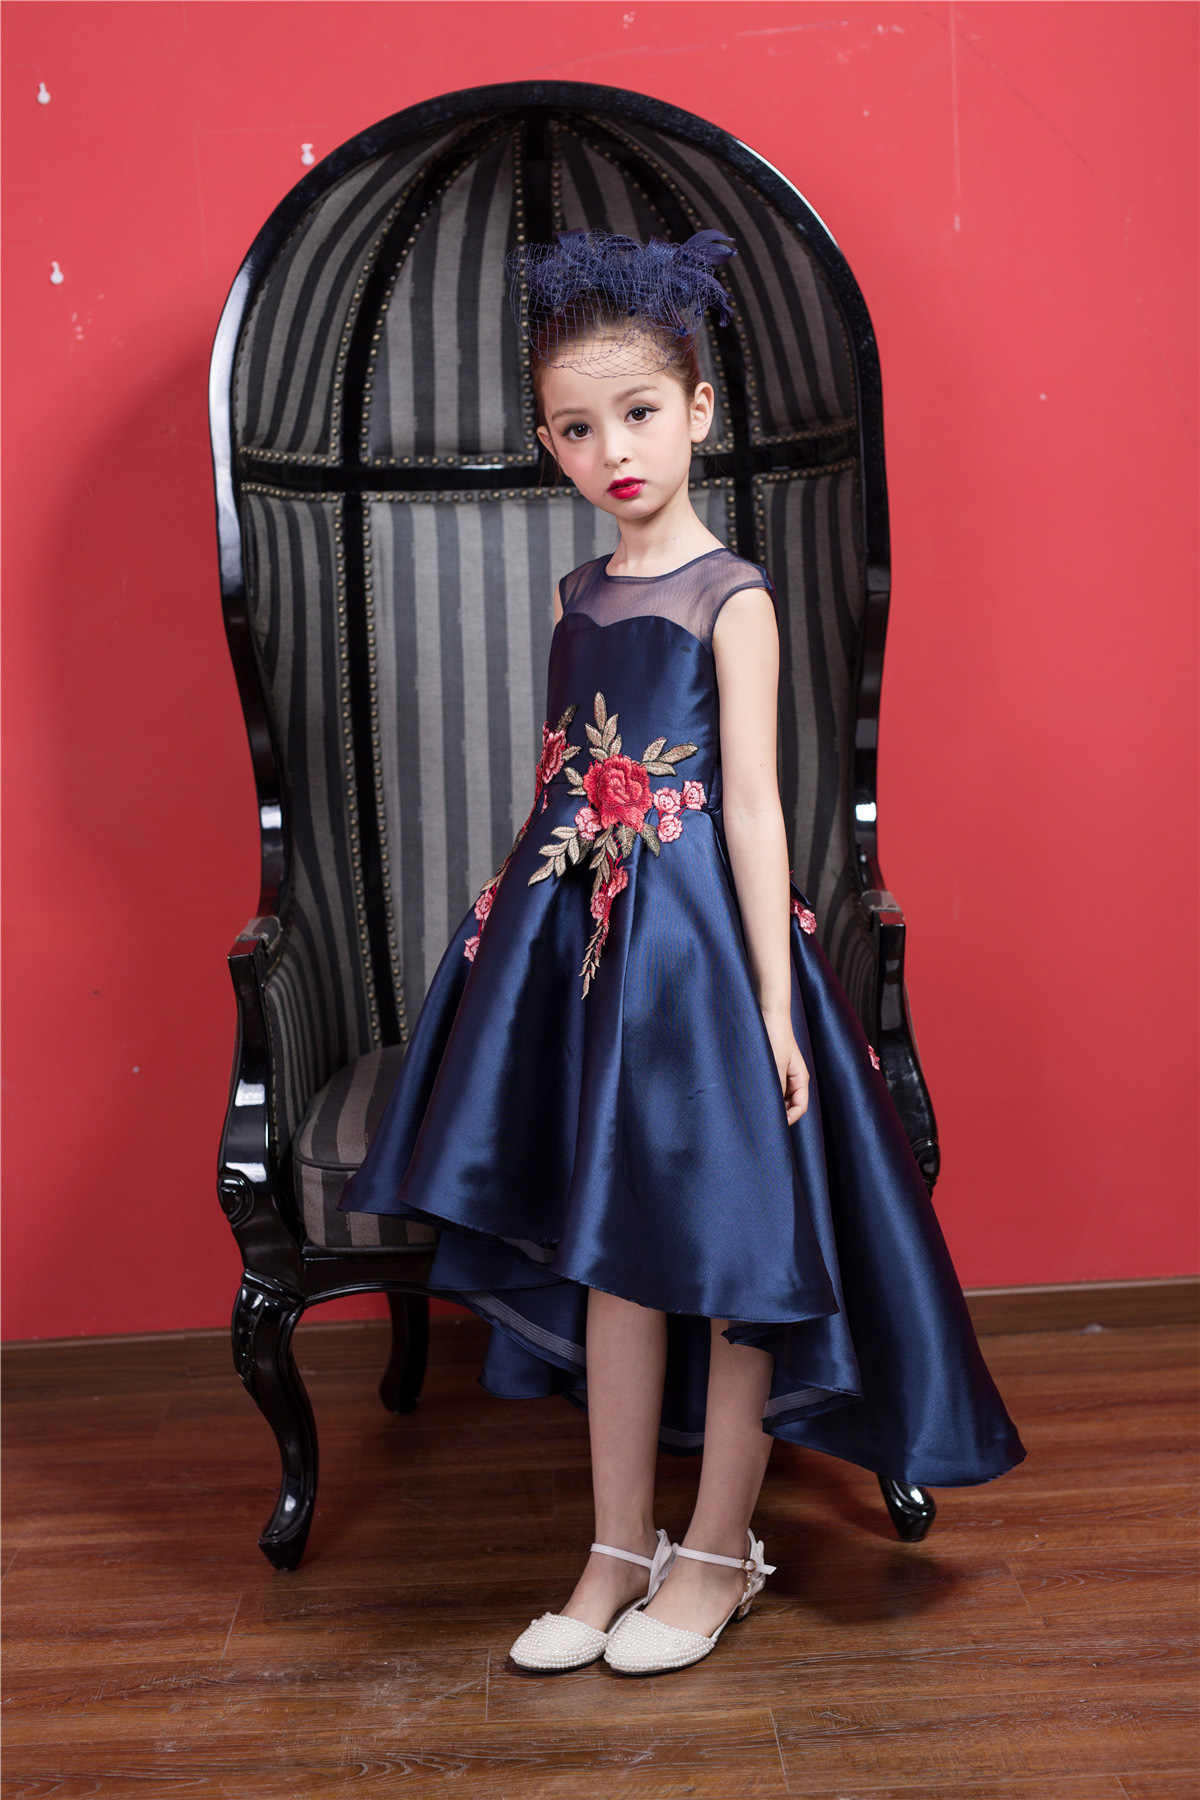 625122ce7d23a Navy Blue Short Front Formal Girl Dress Christmas Kid Party Vestido of 3 4  6 8 10 12 Year Old 2019 Child Girls Clothes RKF174036